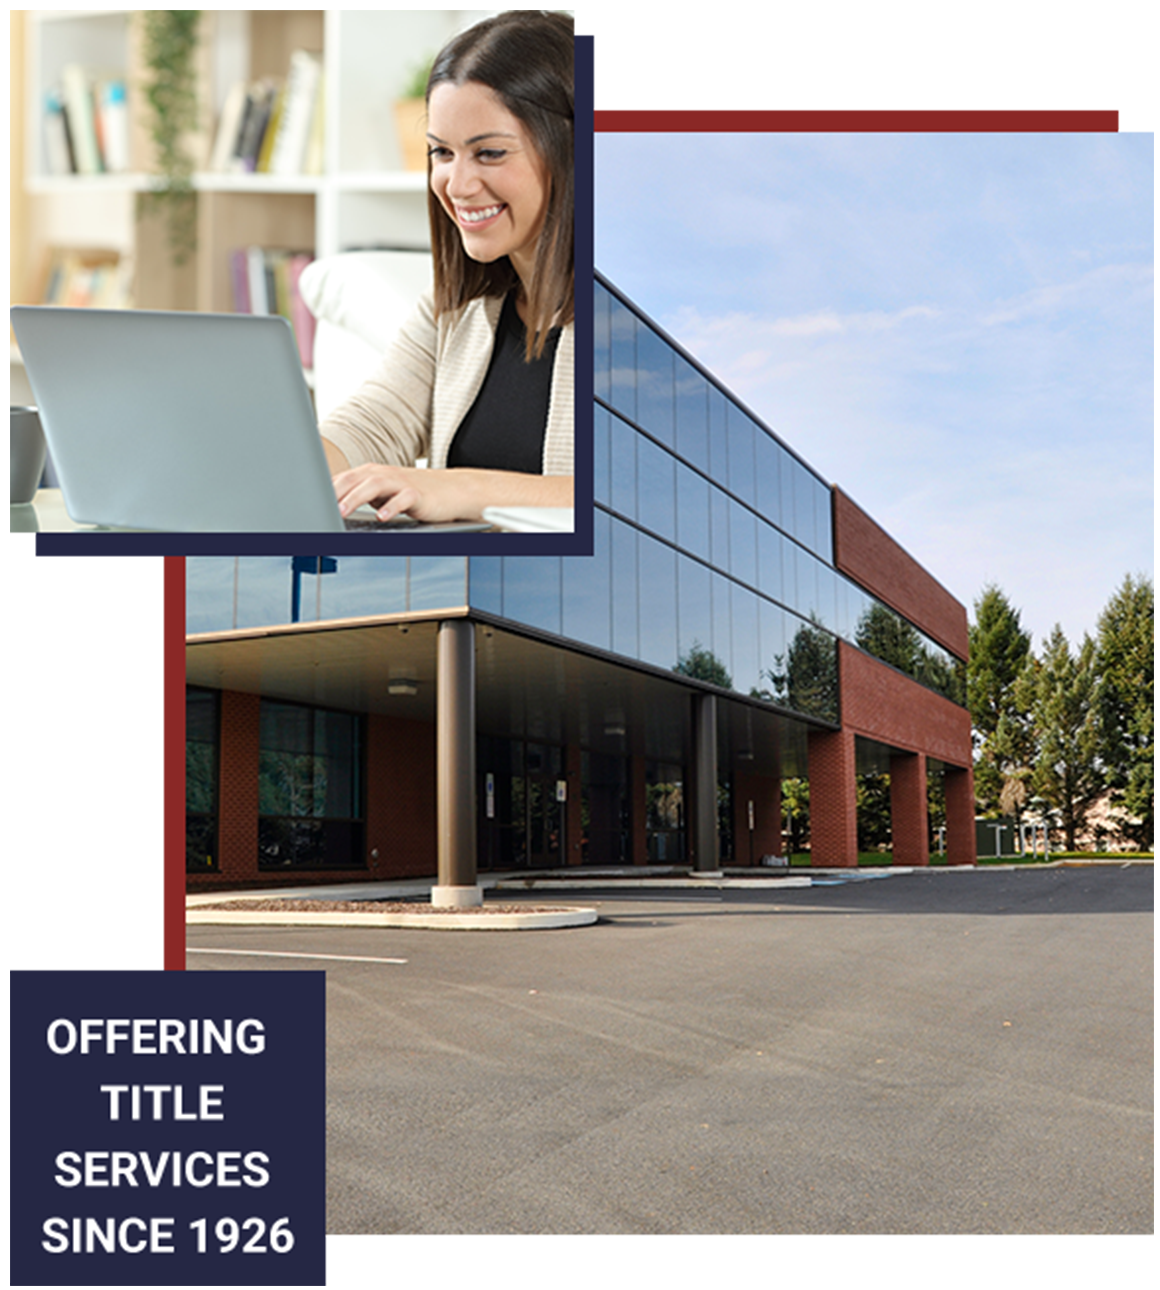 Offering Title Services Since 1926